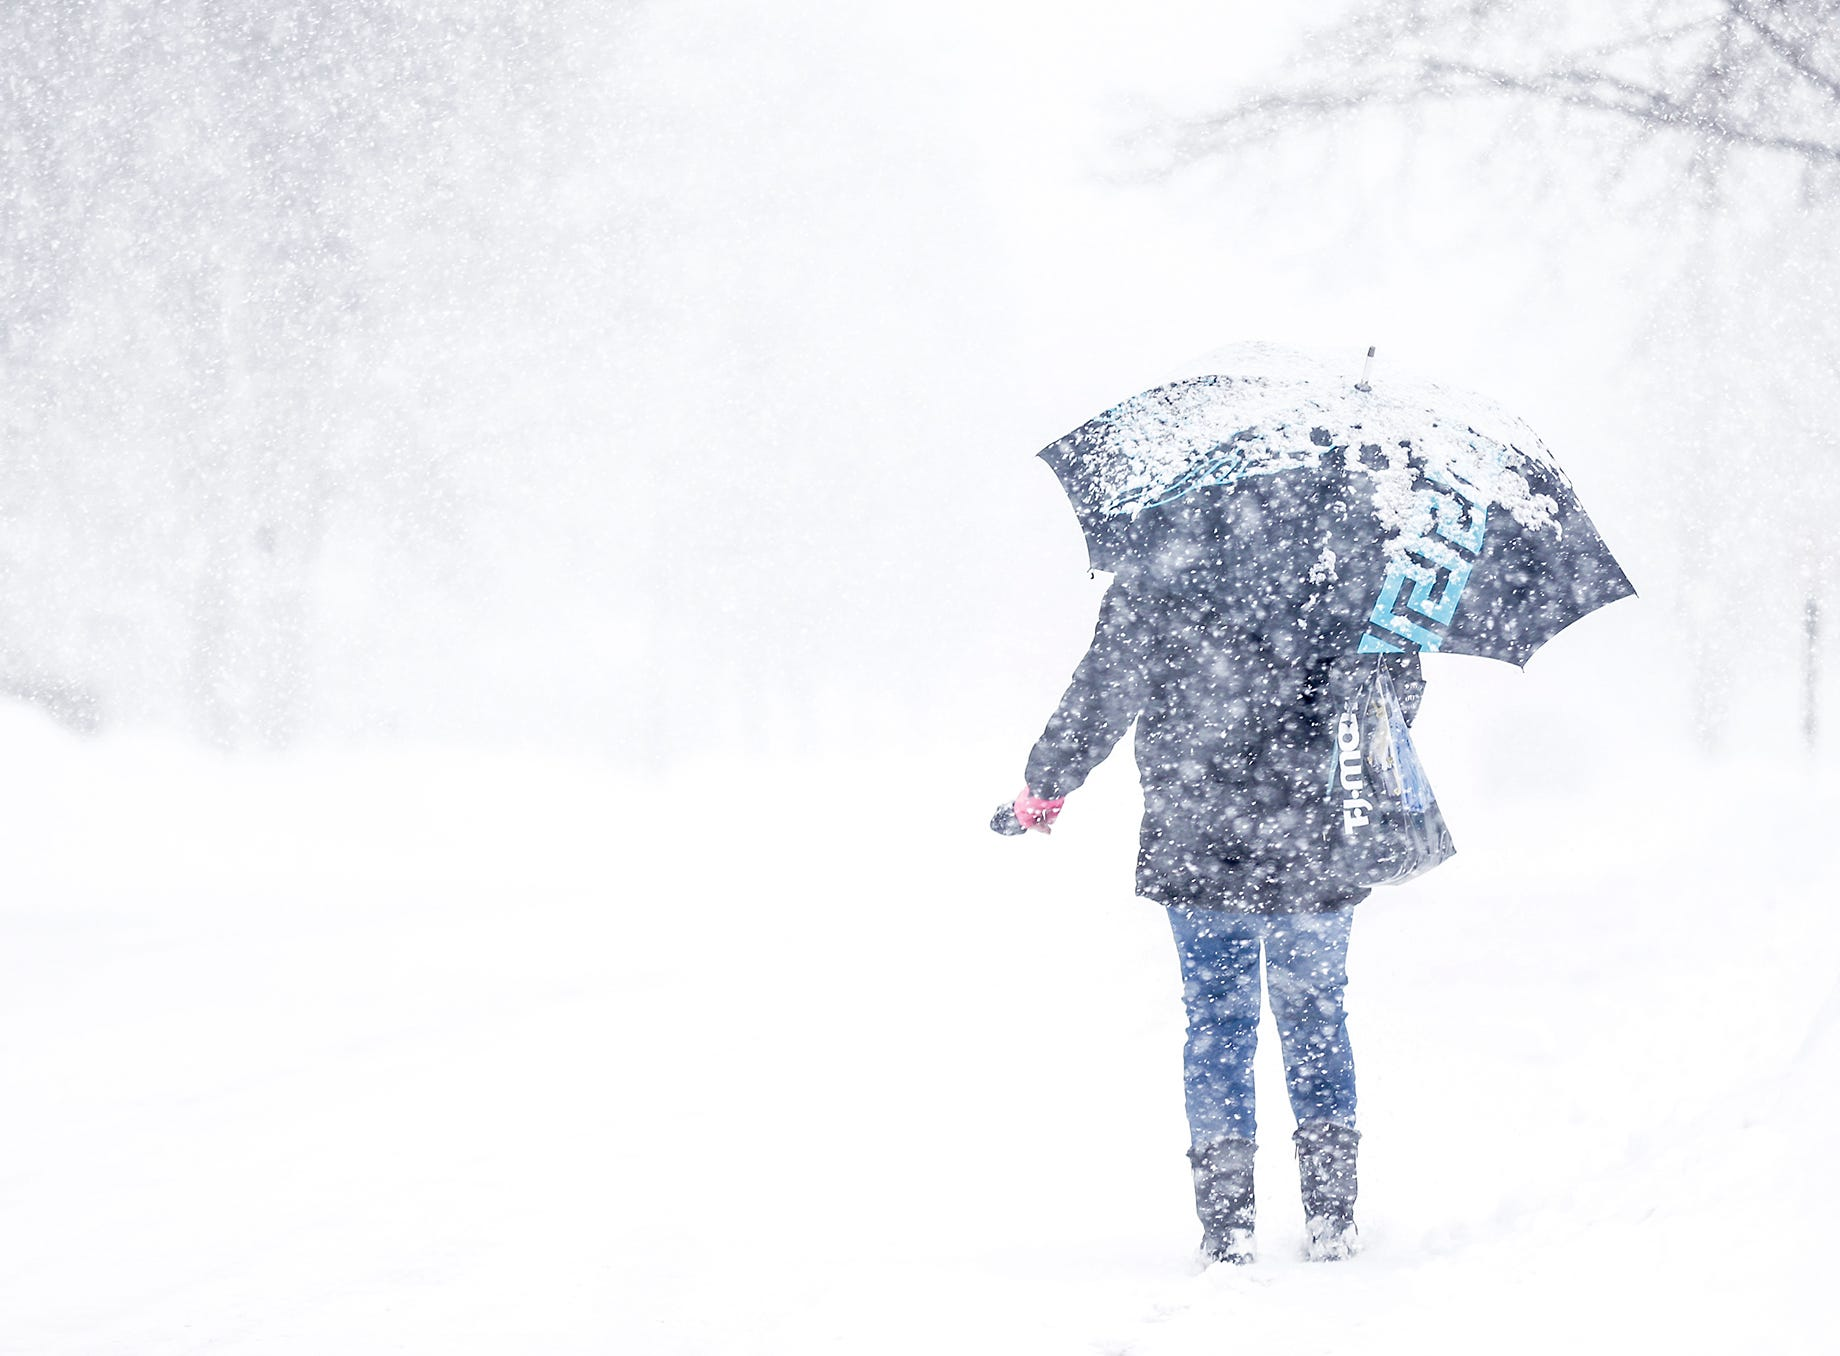 A woman walks during a winter storm Tuesday, Feb. 12, 2019, on Seymour Street in Fond du Lac, Wis. A winter storm warning was issued for the area.